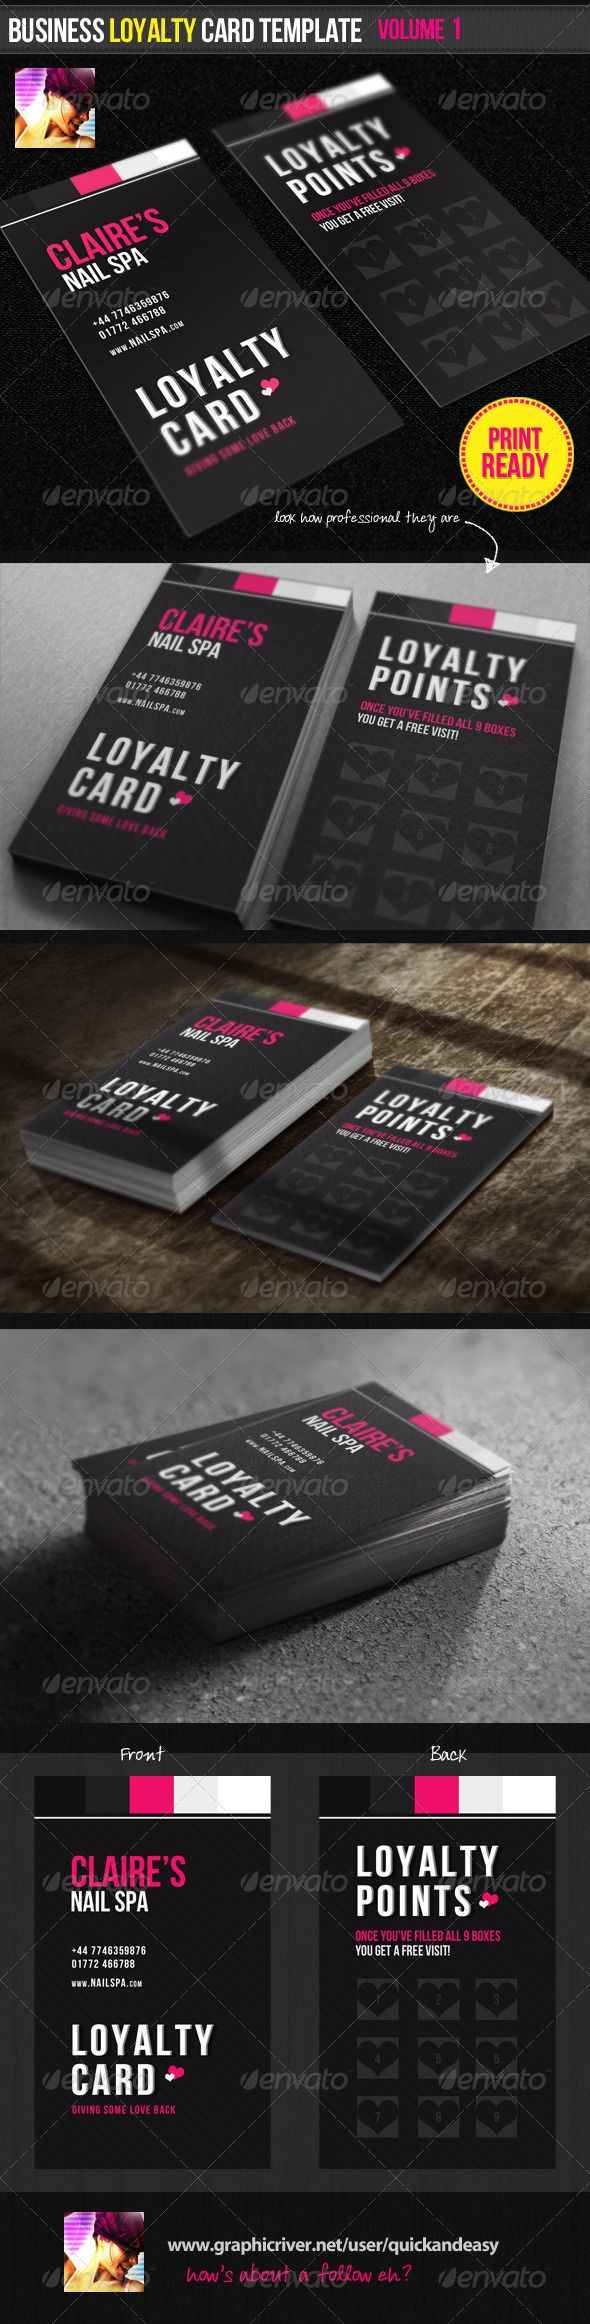 Business Loyalty Card Template Vol 1 Loyalty Card Design Loyalty Card Template Loyalty Card